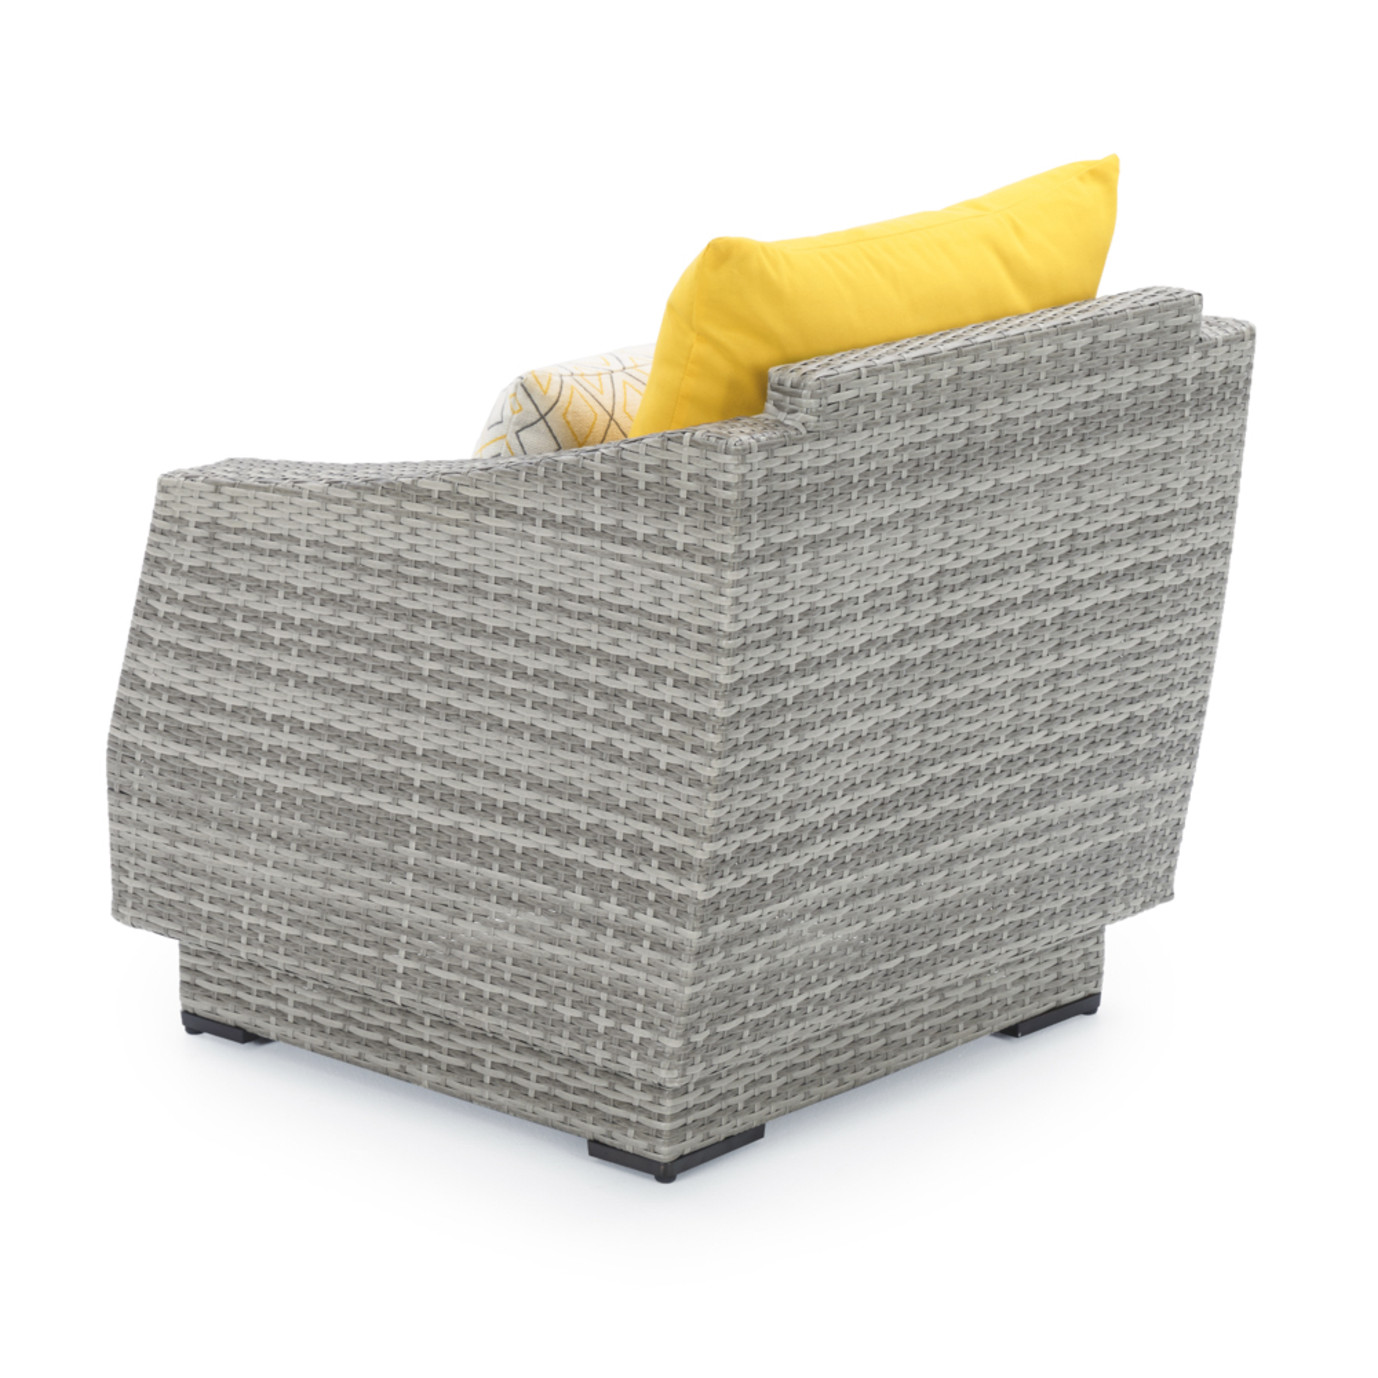 Cannes™ Club Chairs & Side Table - Sunflower Yellow